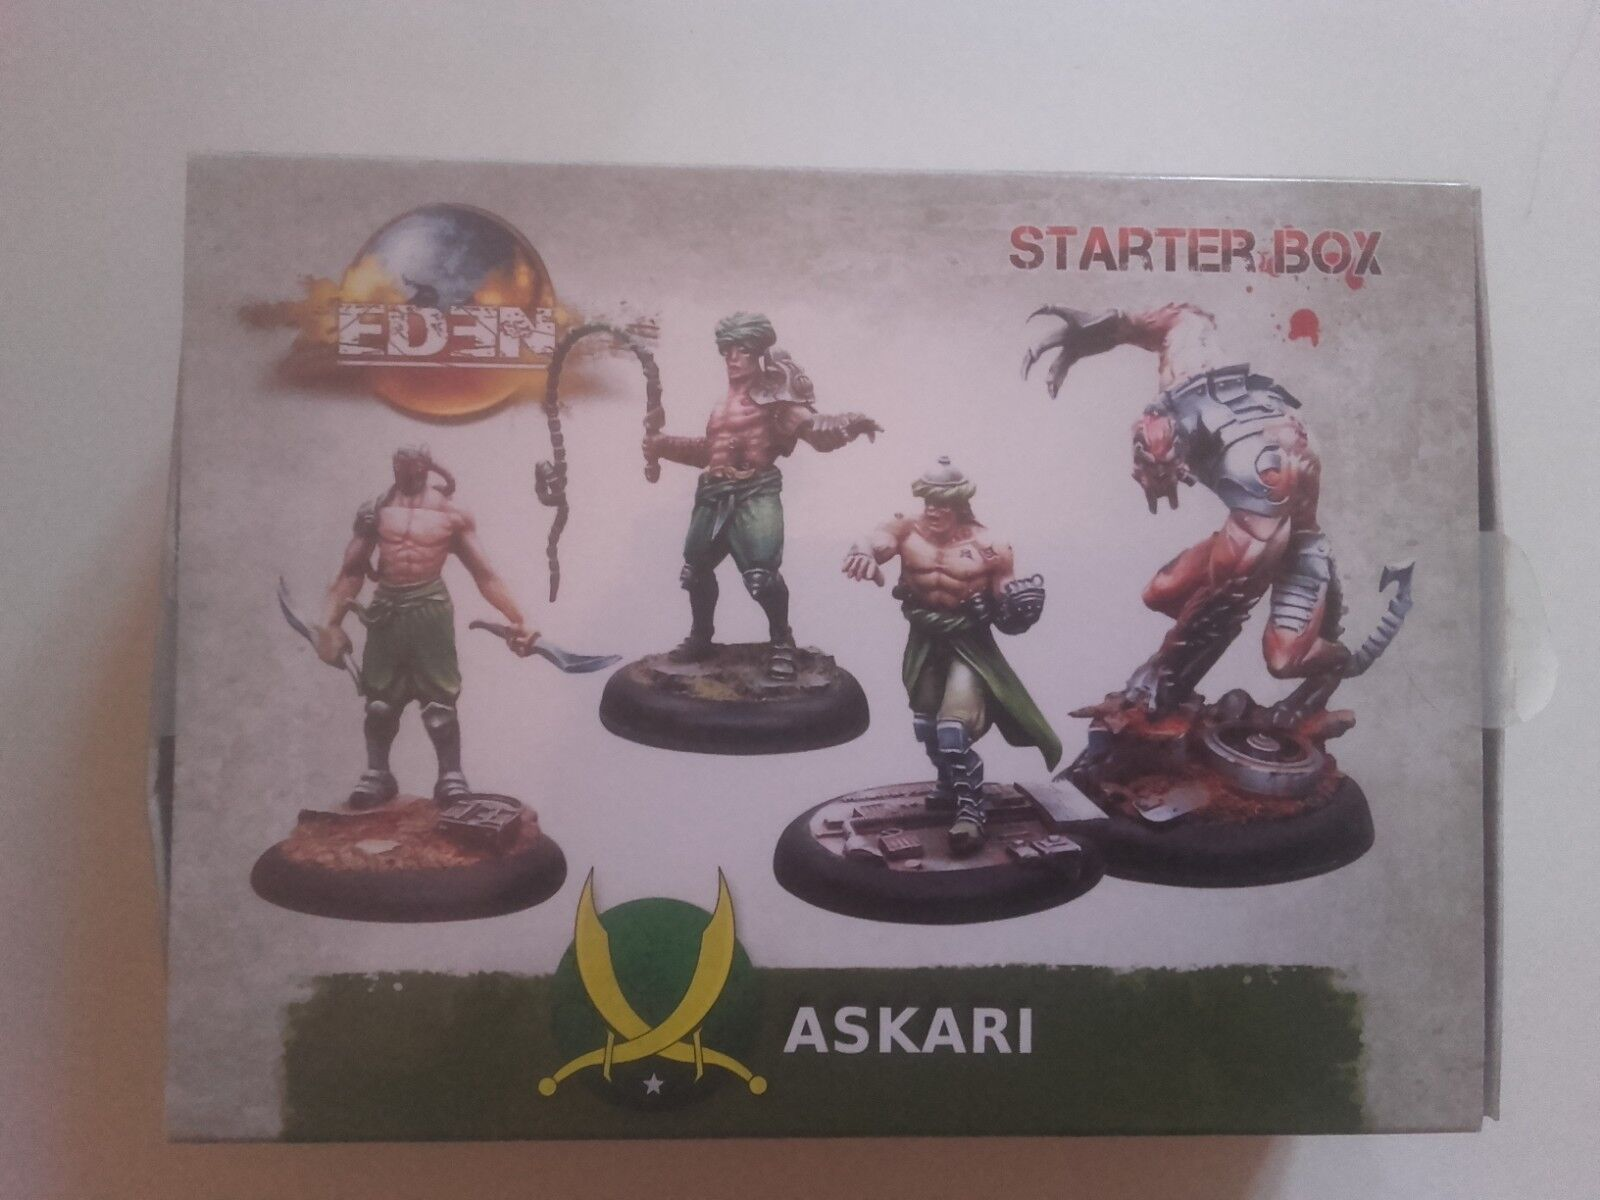 Starter Box Askaris pour Eden Eden Eden the Game, Happy Games Factory Neuf a0551d